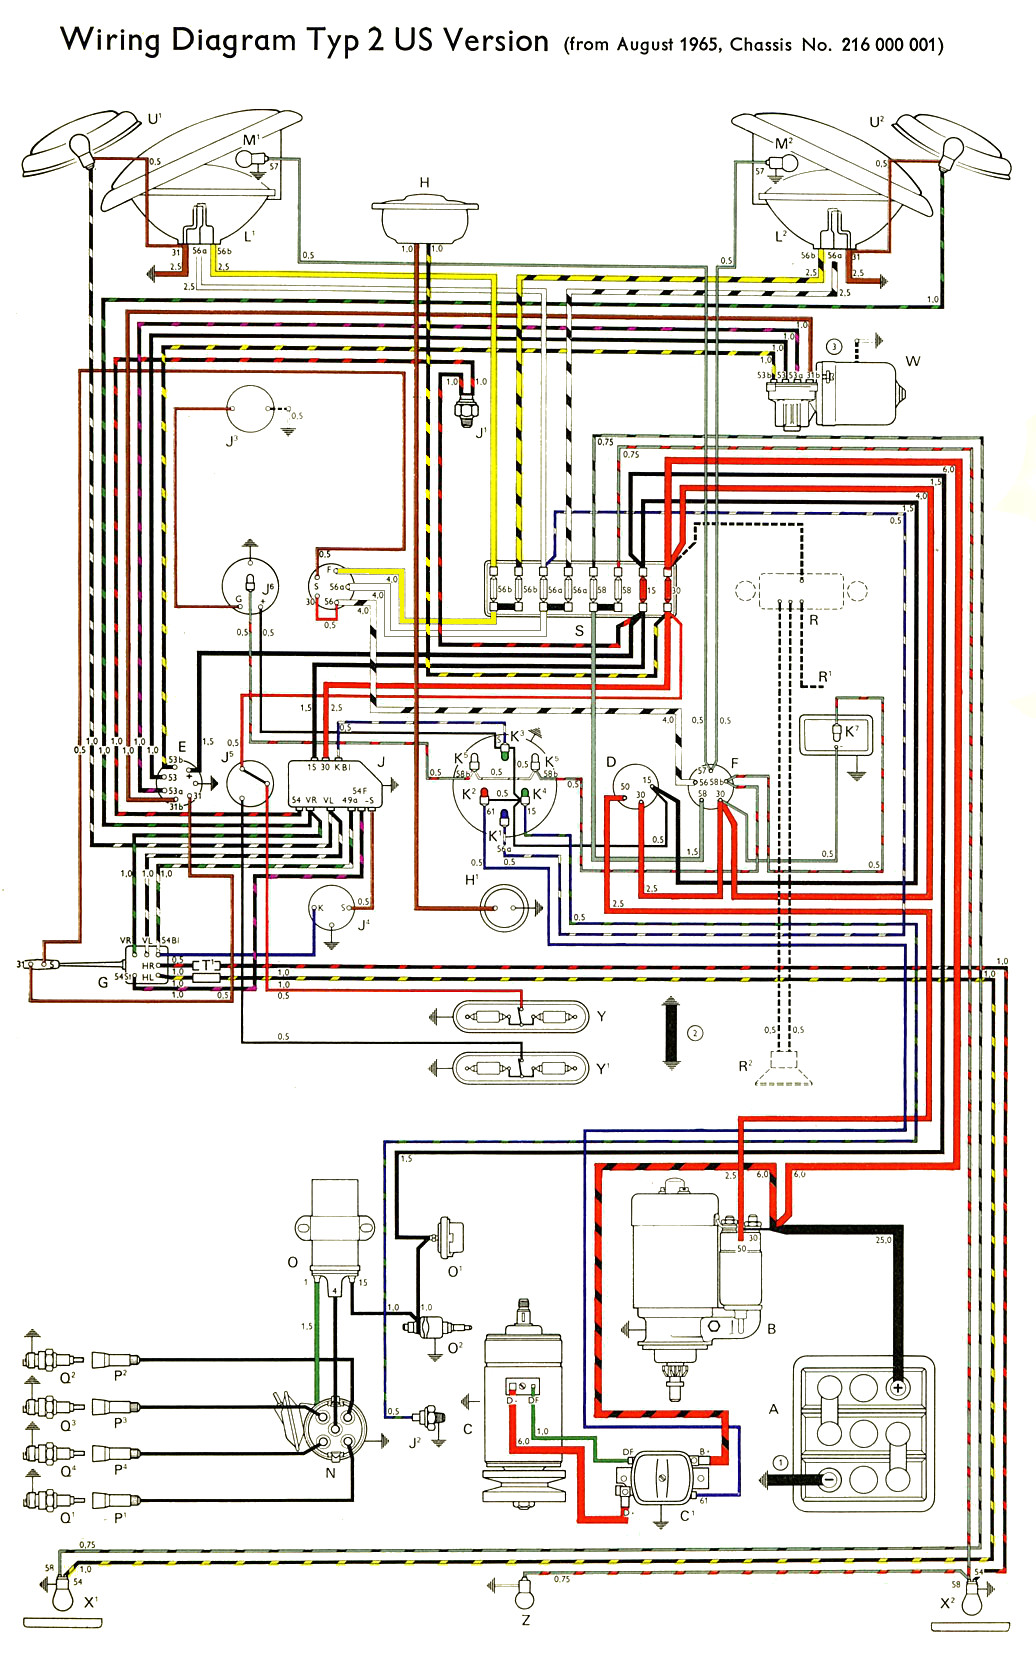 bus_66_USA 1965 type 2 wiring diagram 1965 wiring diagrams collection  at edmiracle.co